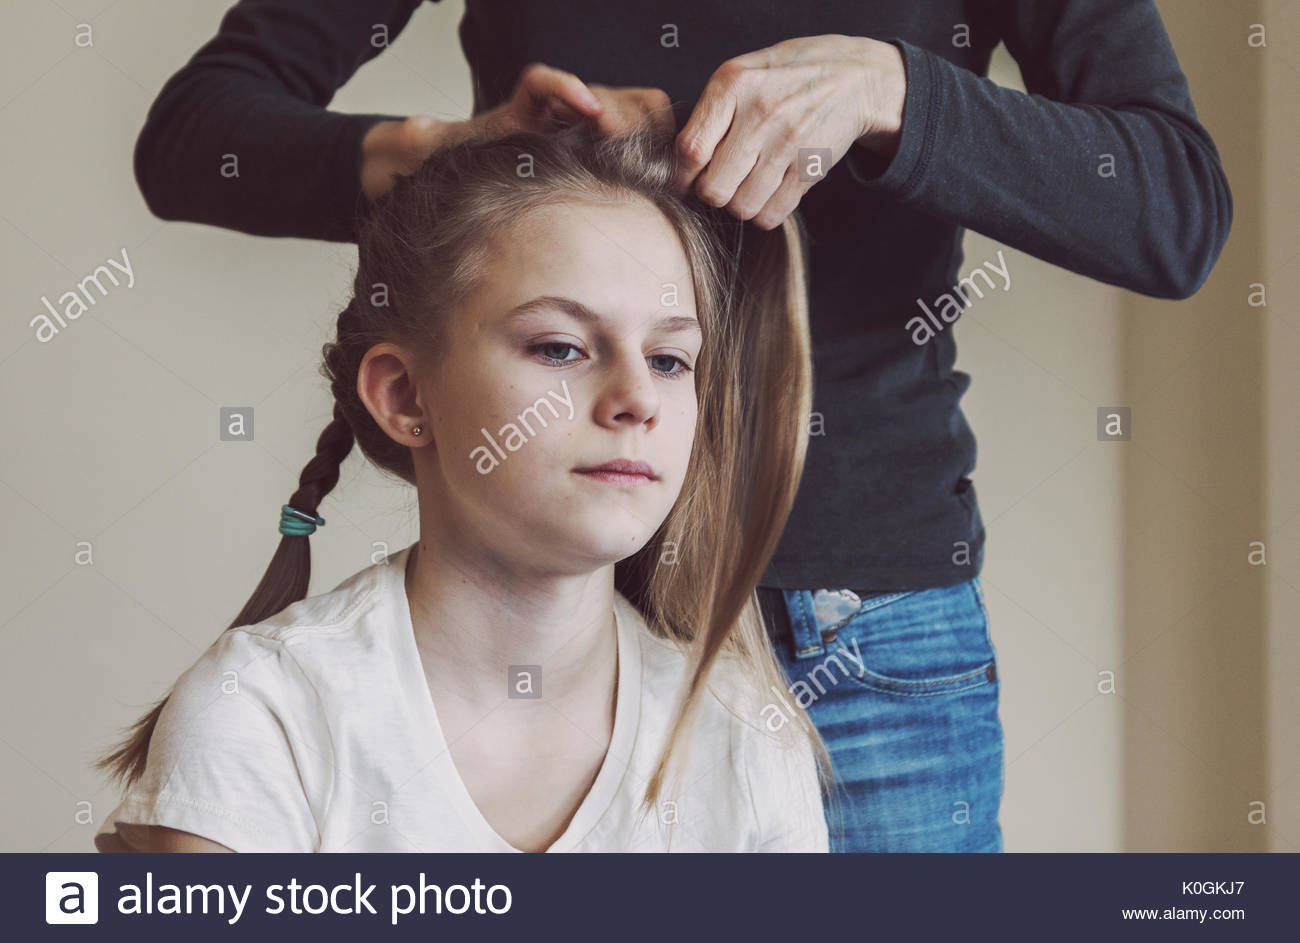 Mother braiding young girls hair. Real life portrait picture of caucasian teen girl with deliberate warm mate filter - Stock Image